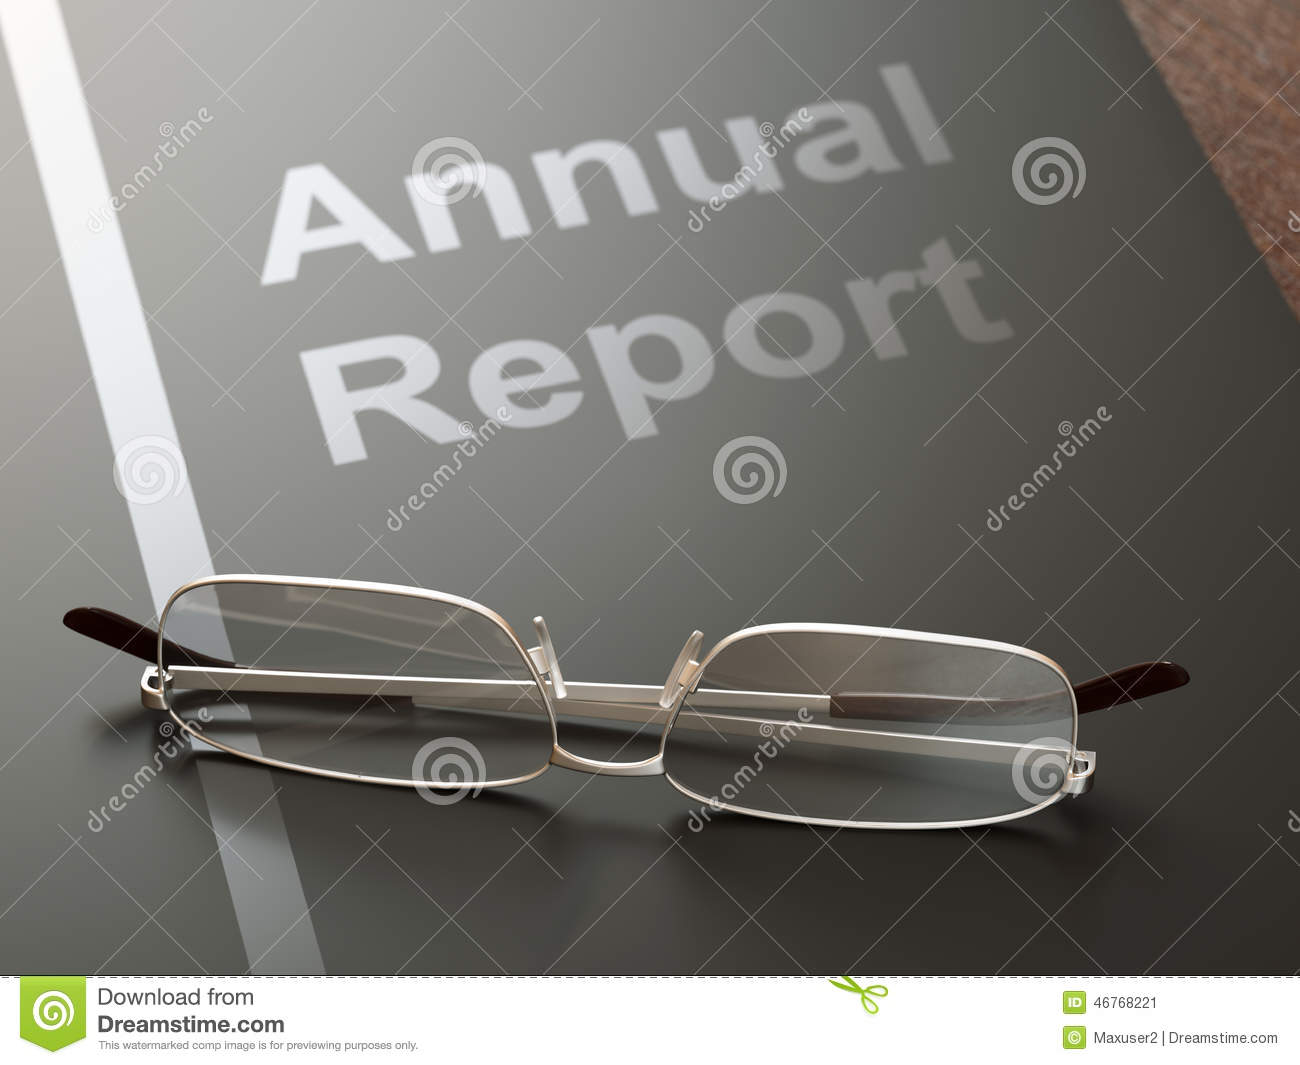 reviewing the annual report of hutchison Annual report 1999 standard full version (747 mb) hd full version managing director's report business review - harbour city - times square - plaza hollywood.